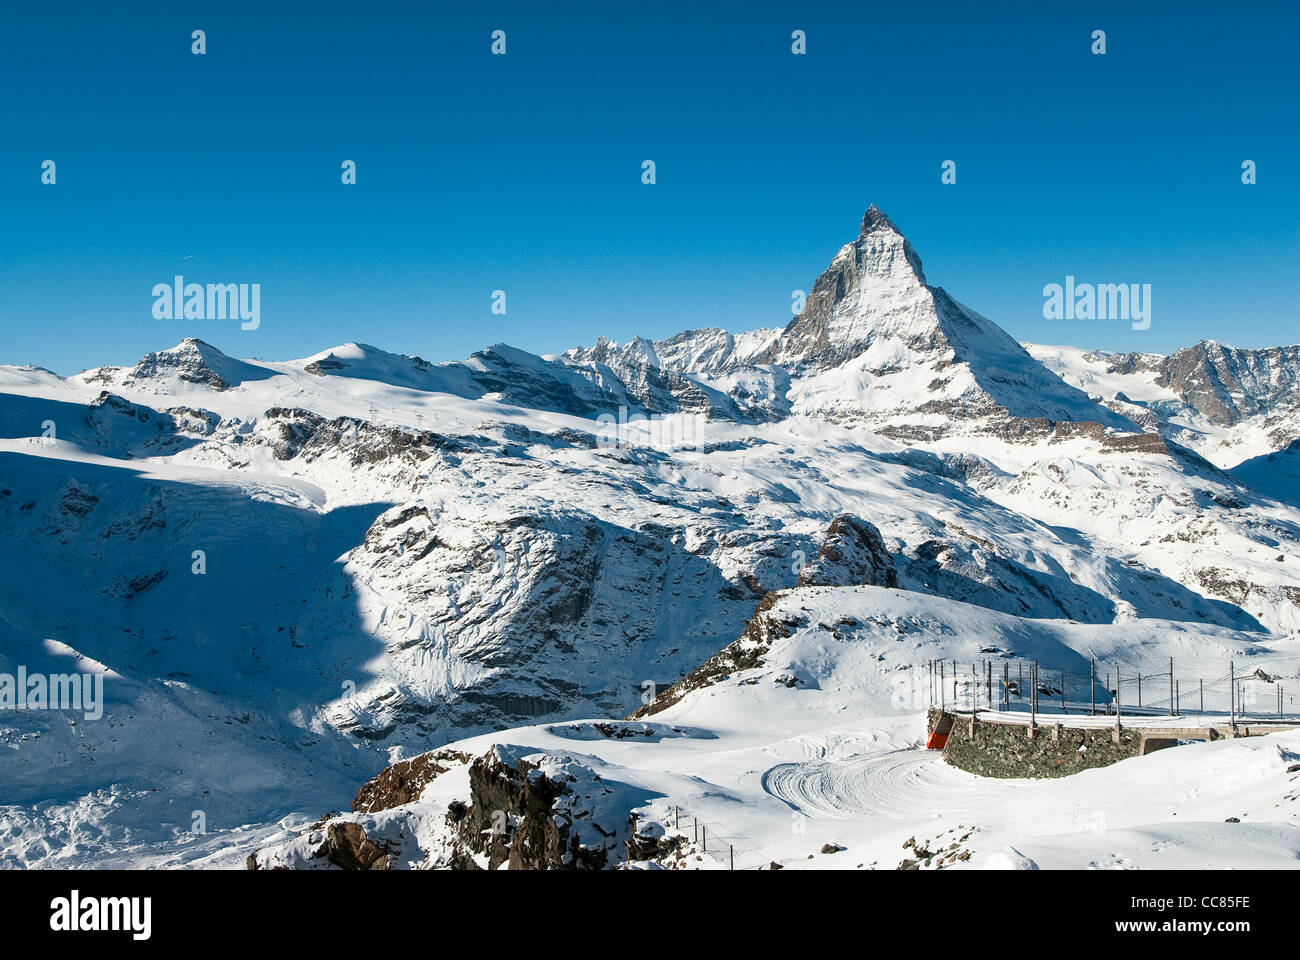 Scenic view of Matterhorn from Gornergrat in Winter, Zermatt, Wallis, Switzerland - Stock Image